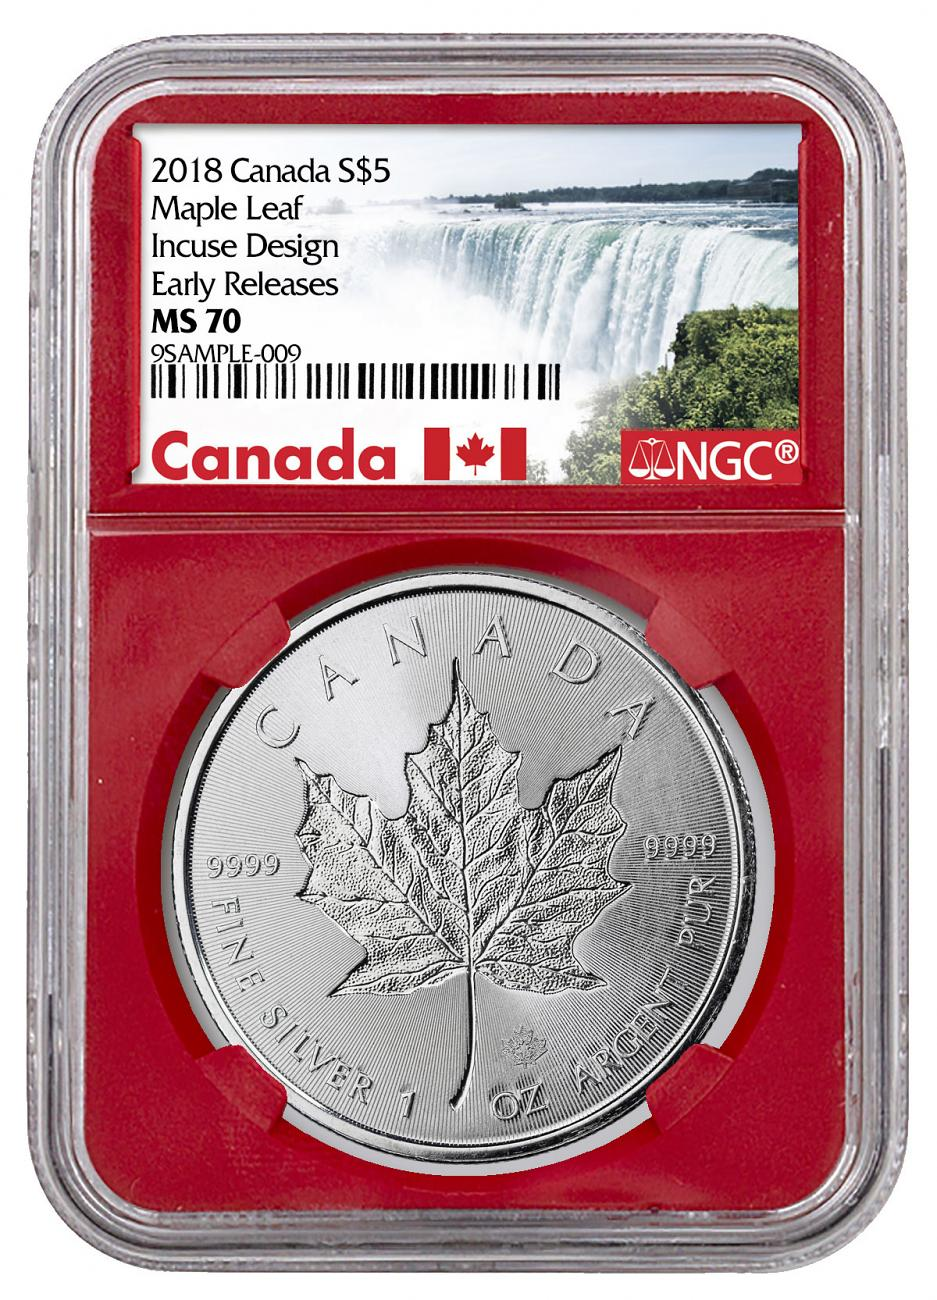 2018 Canada 1 oz Silver Maple Leaf - Incuse $5 Coin NGC MS70 ER Red Core Holder Exclusive Canada Label